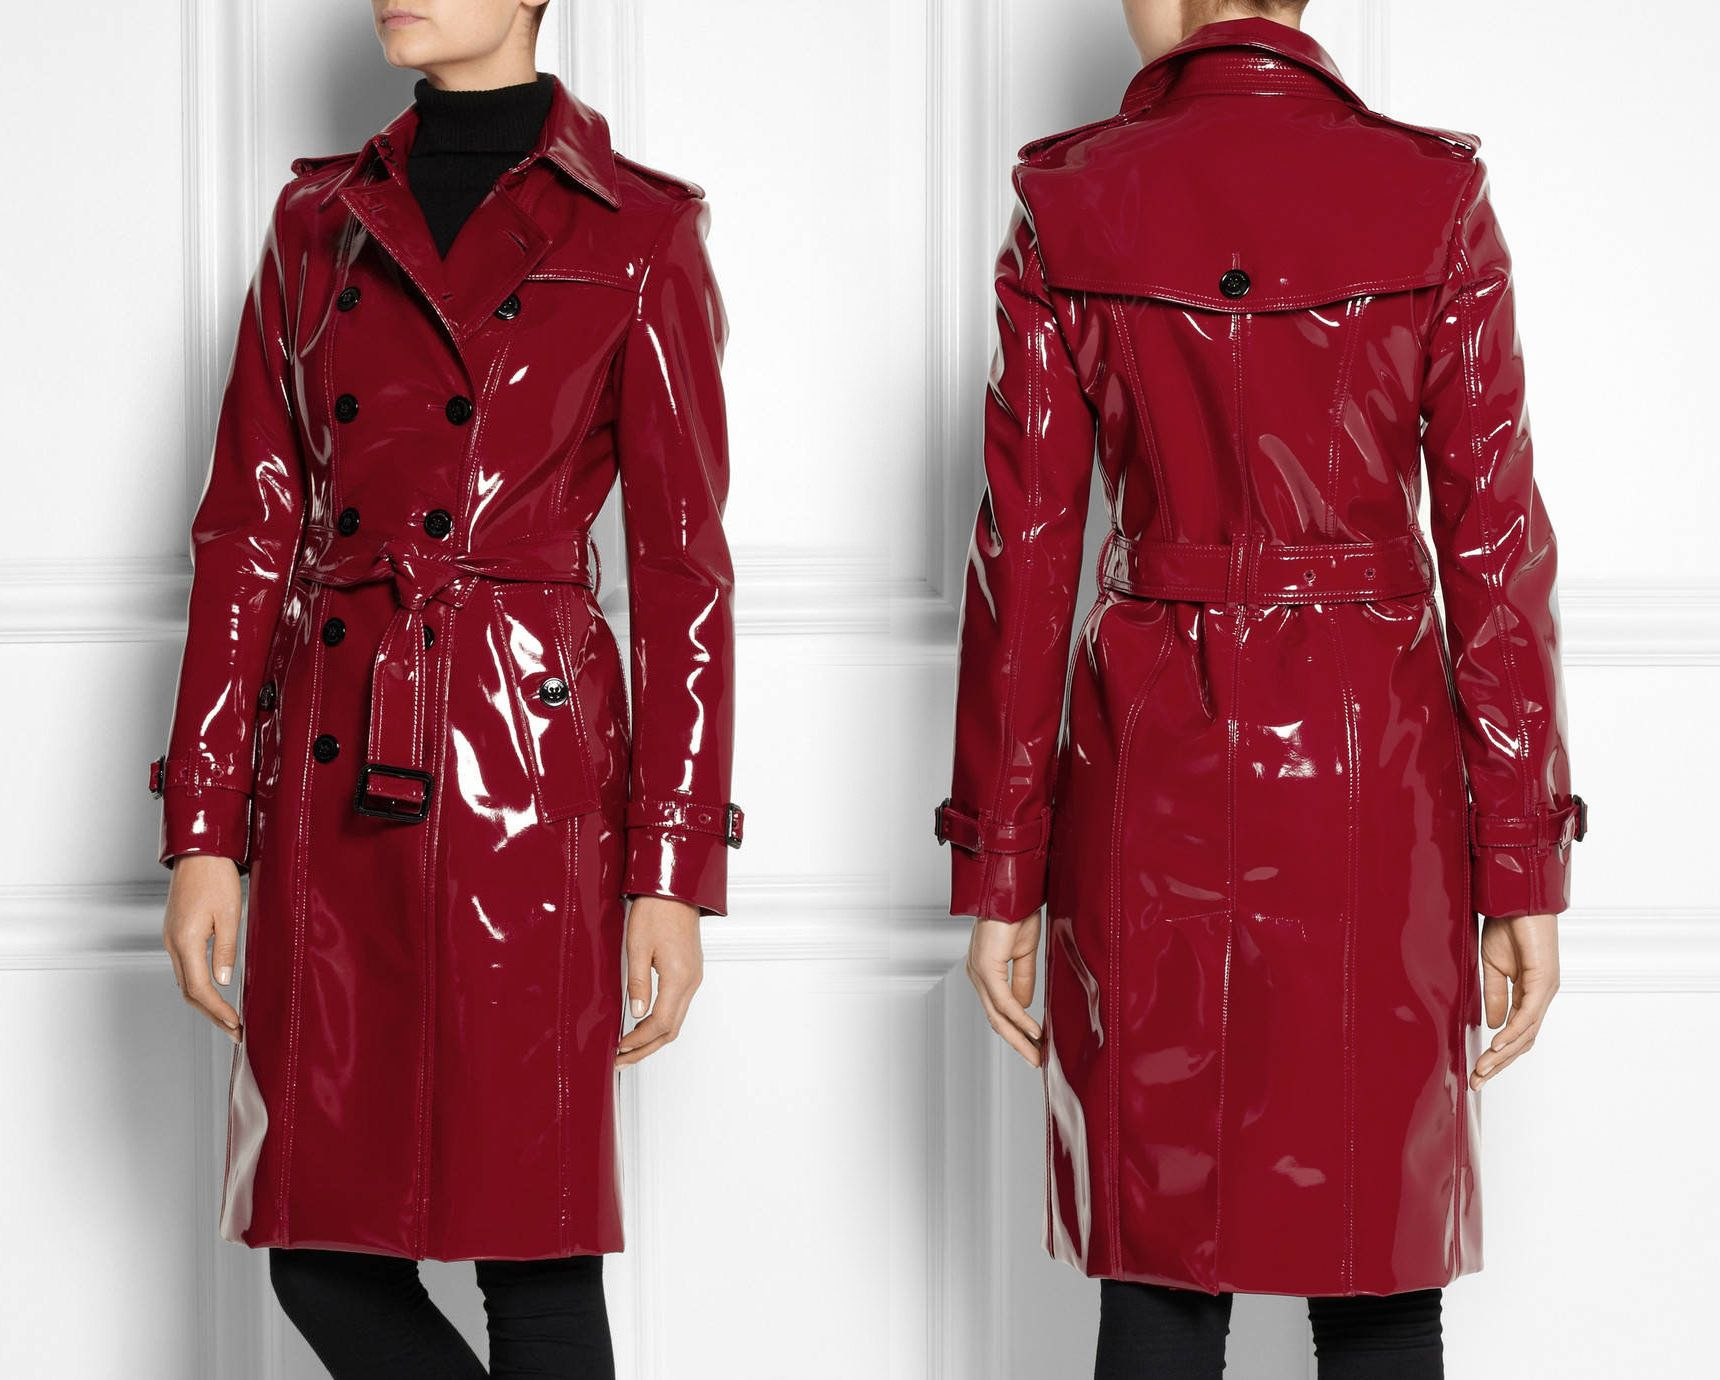 Pvc Vinyl Trench Coat Red Black Pink White Gold Blue Etsy Trench Coats Women Trench Coat Red Jacket Leather